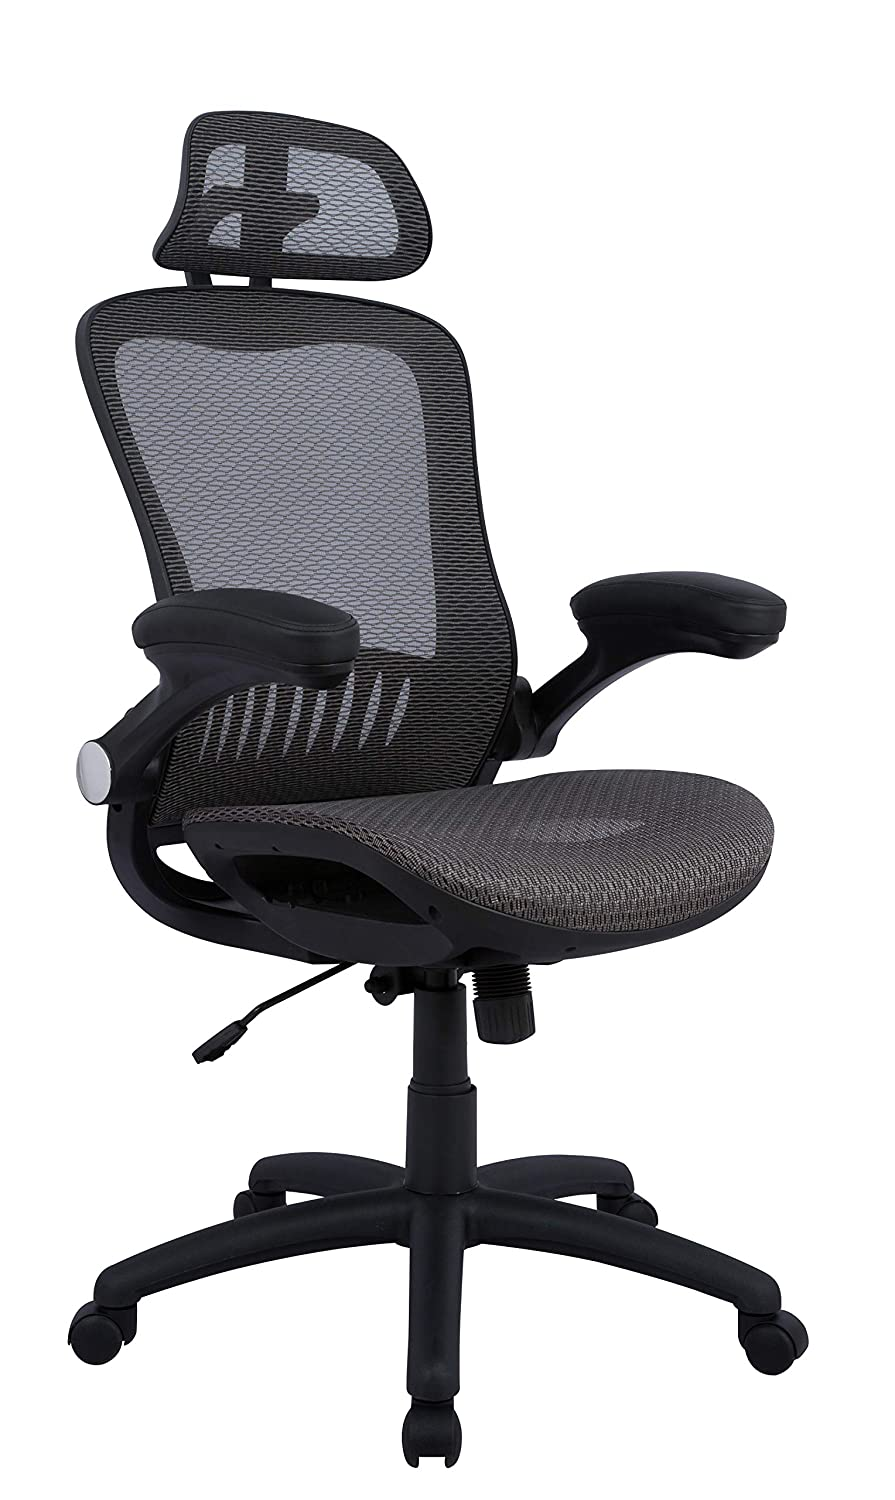 AmazonBasics - Adjustable High-Back Mesh Chair with Flip-up Arms and Head Rest – Grey